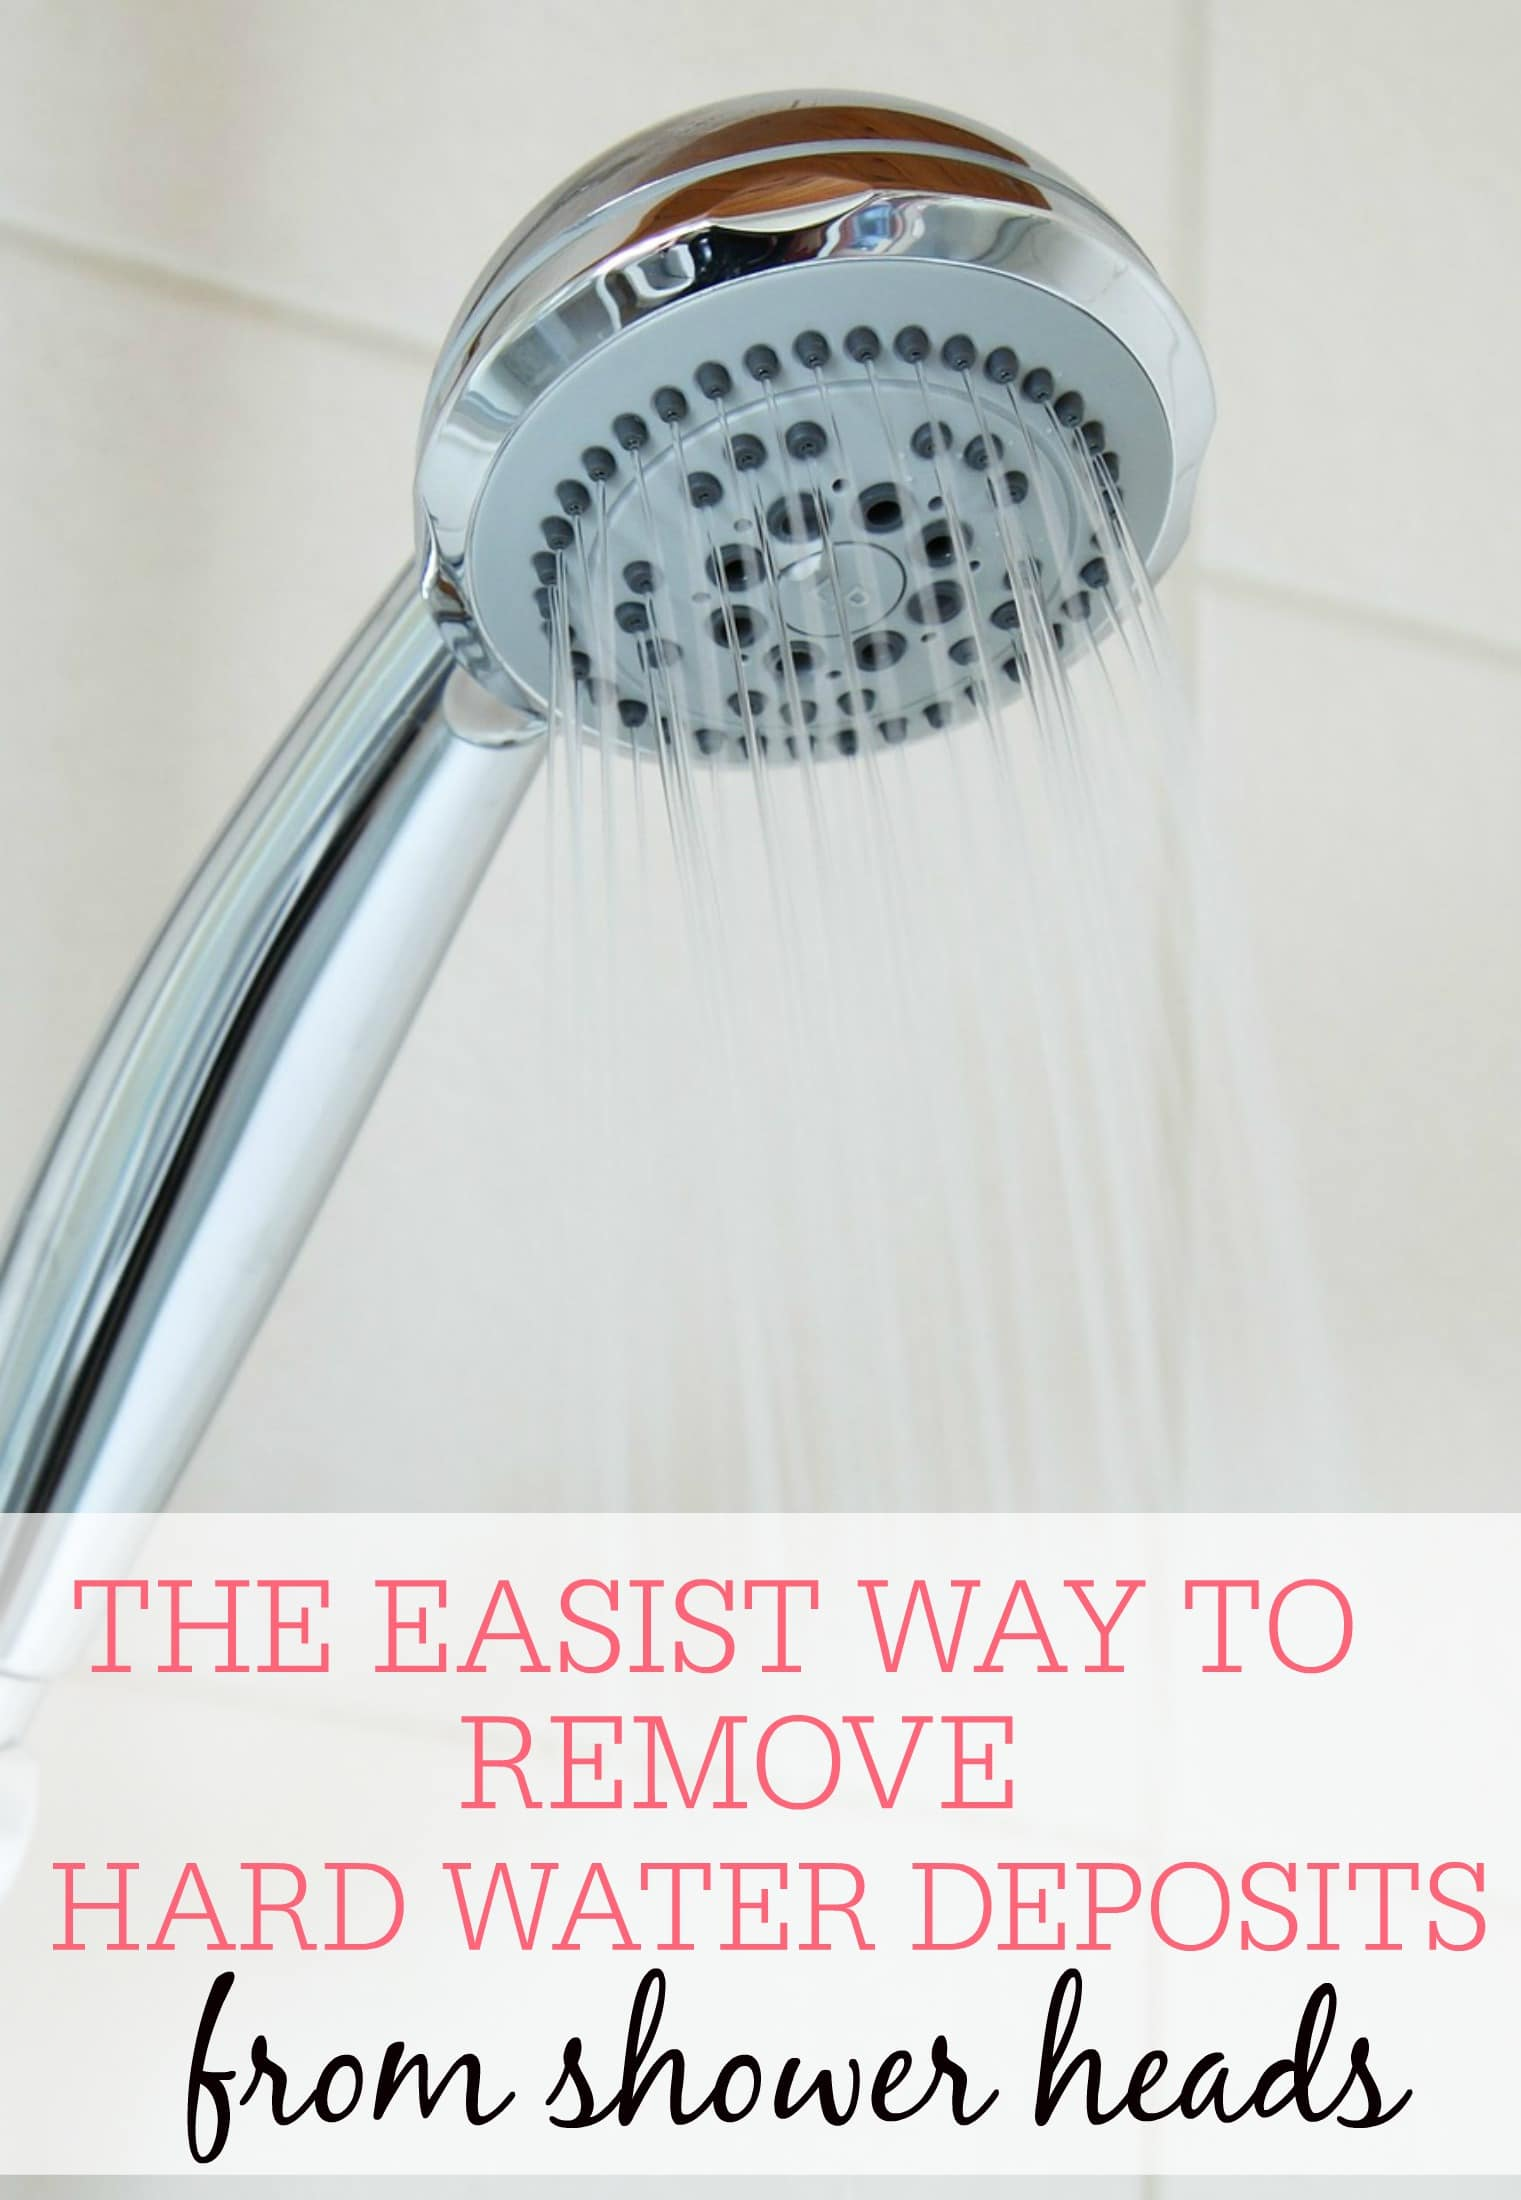 The Easiest Way To Remove Hard Water Deposits From Shower Heads ...